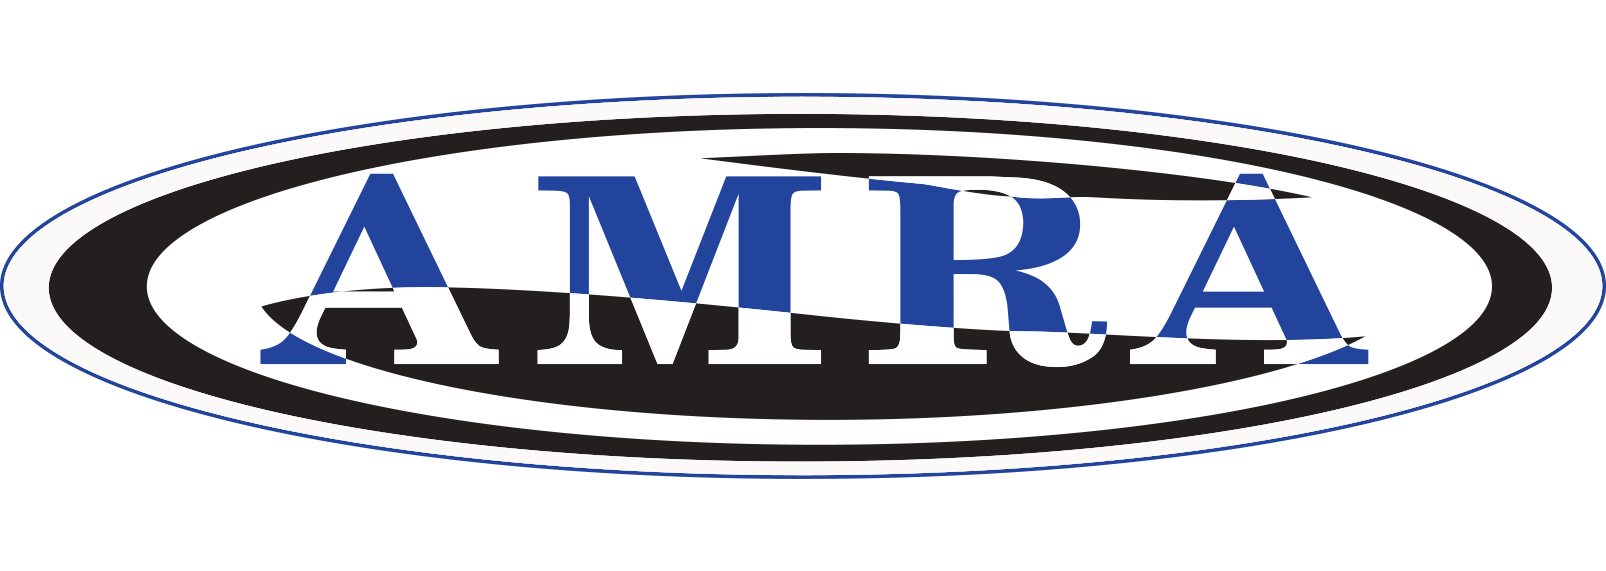 American Motorcycle Racing Association Martin, MI @ US 131 Motorsports Park